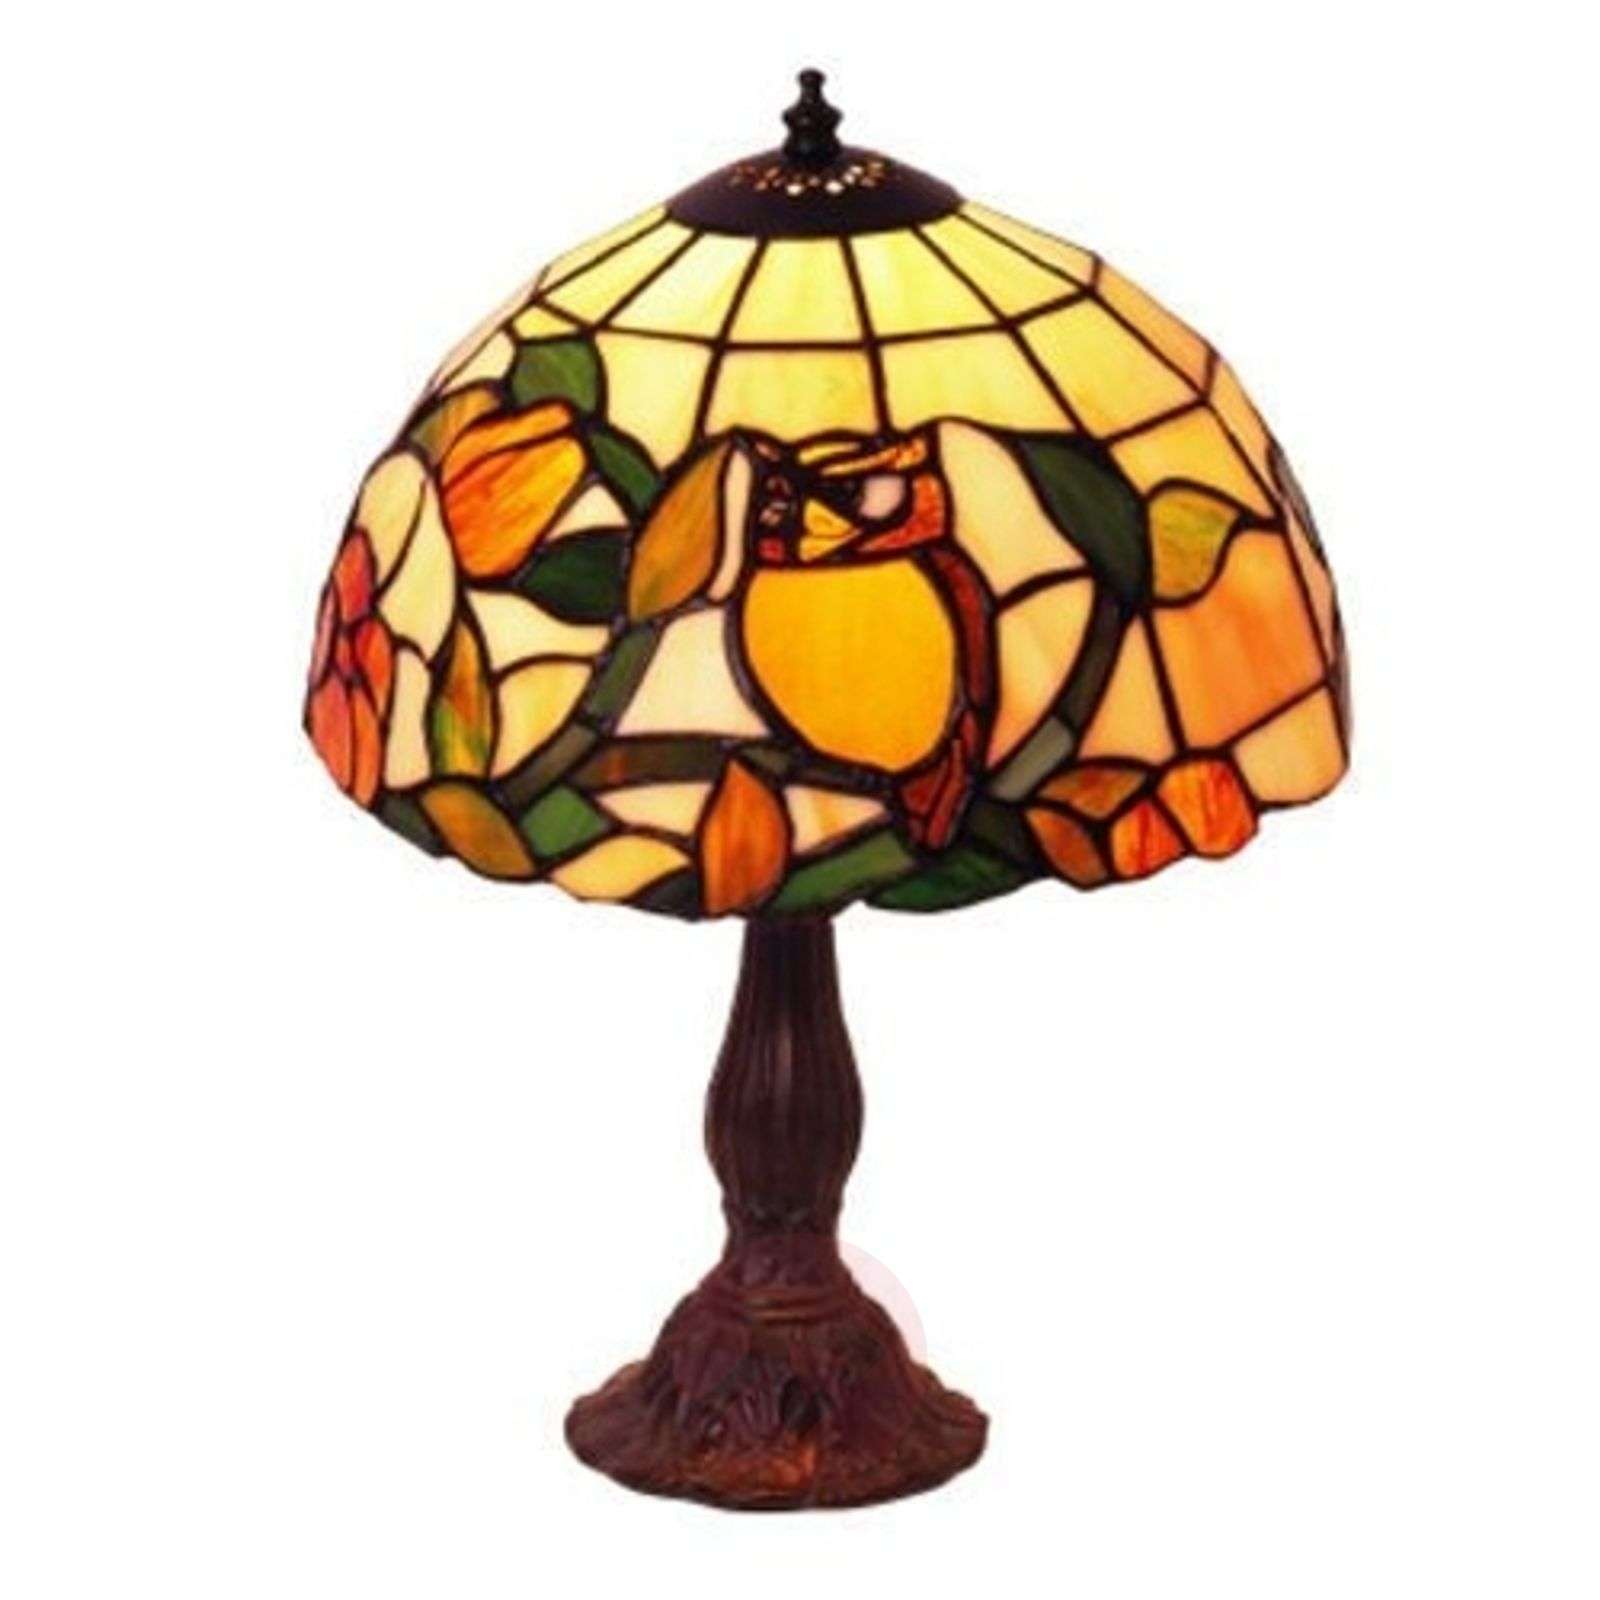 Motif table lamp JULIANA in the Tiffany style-1032198-01